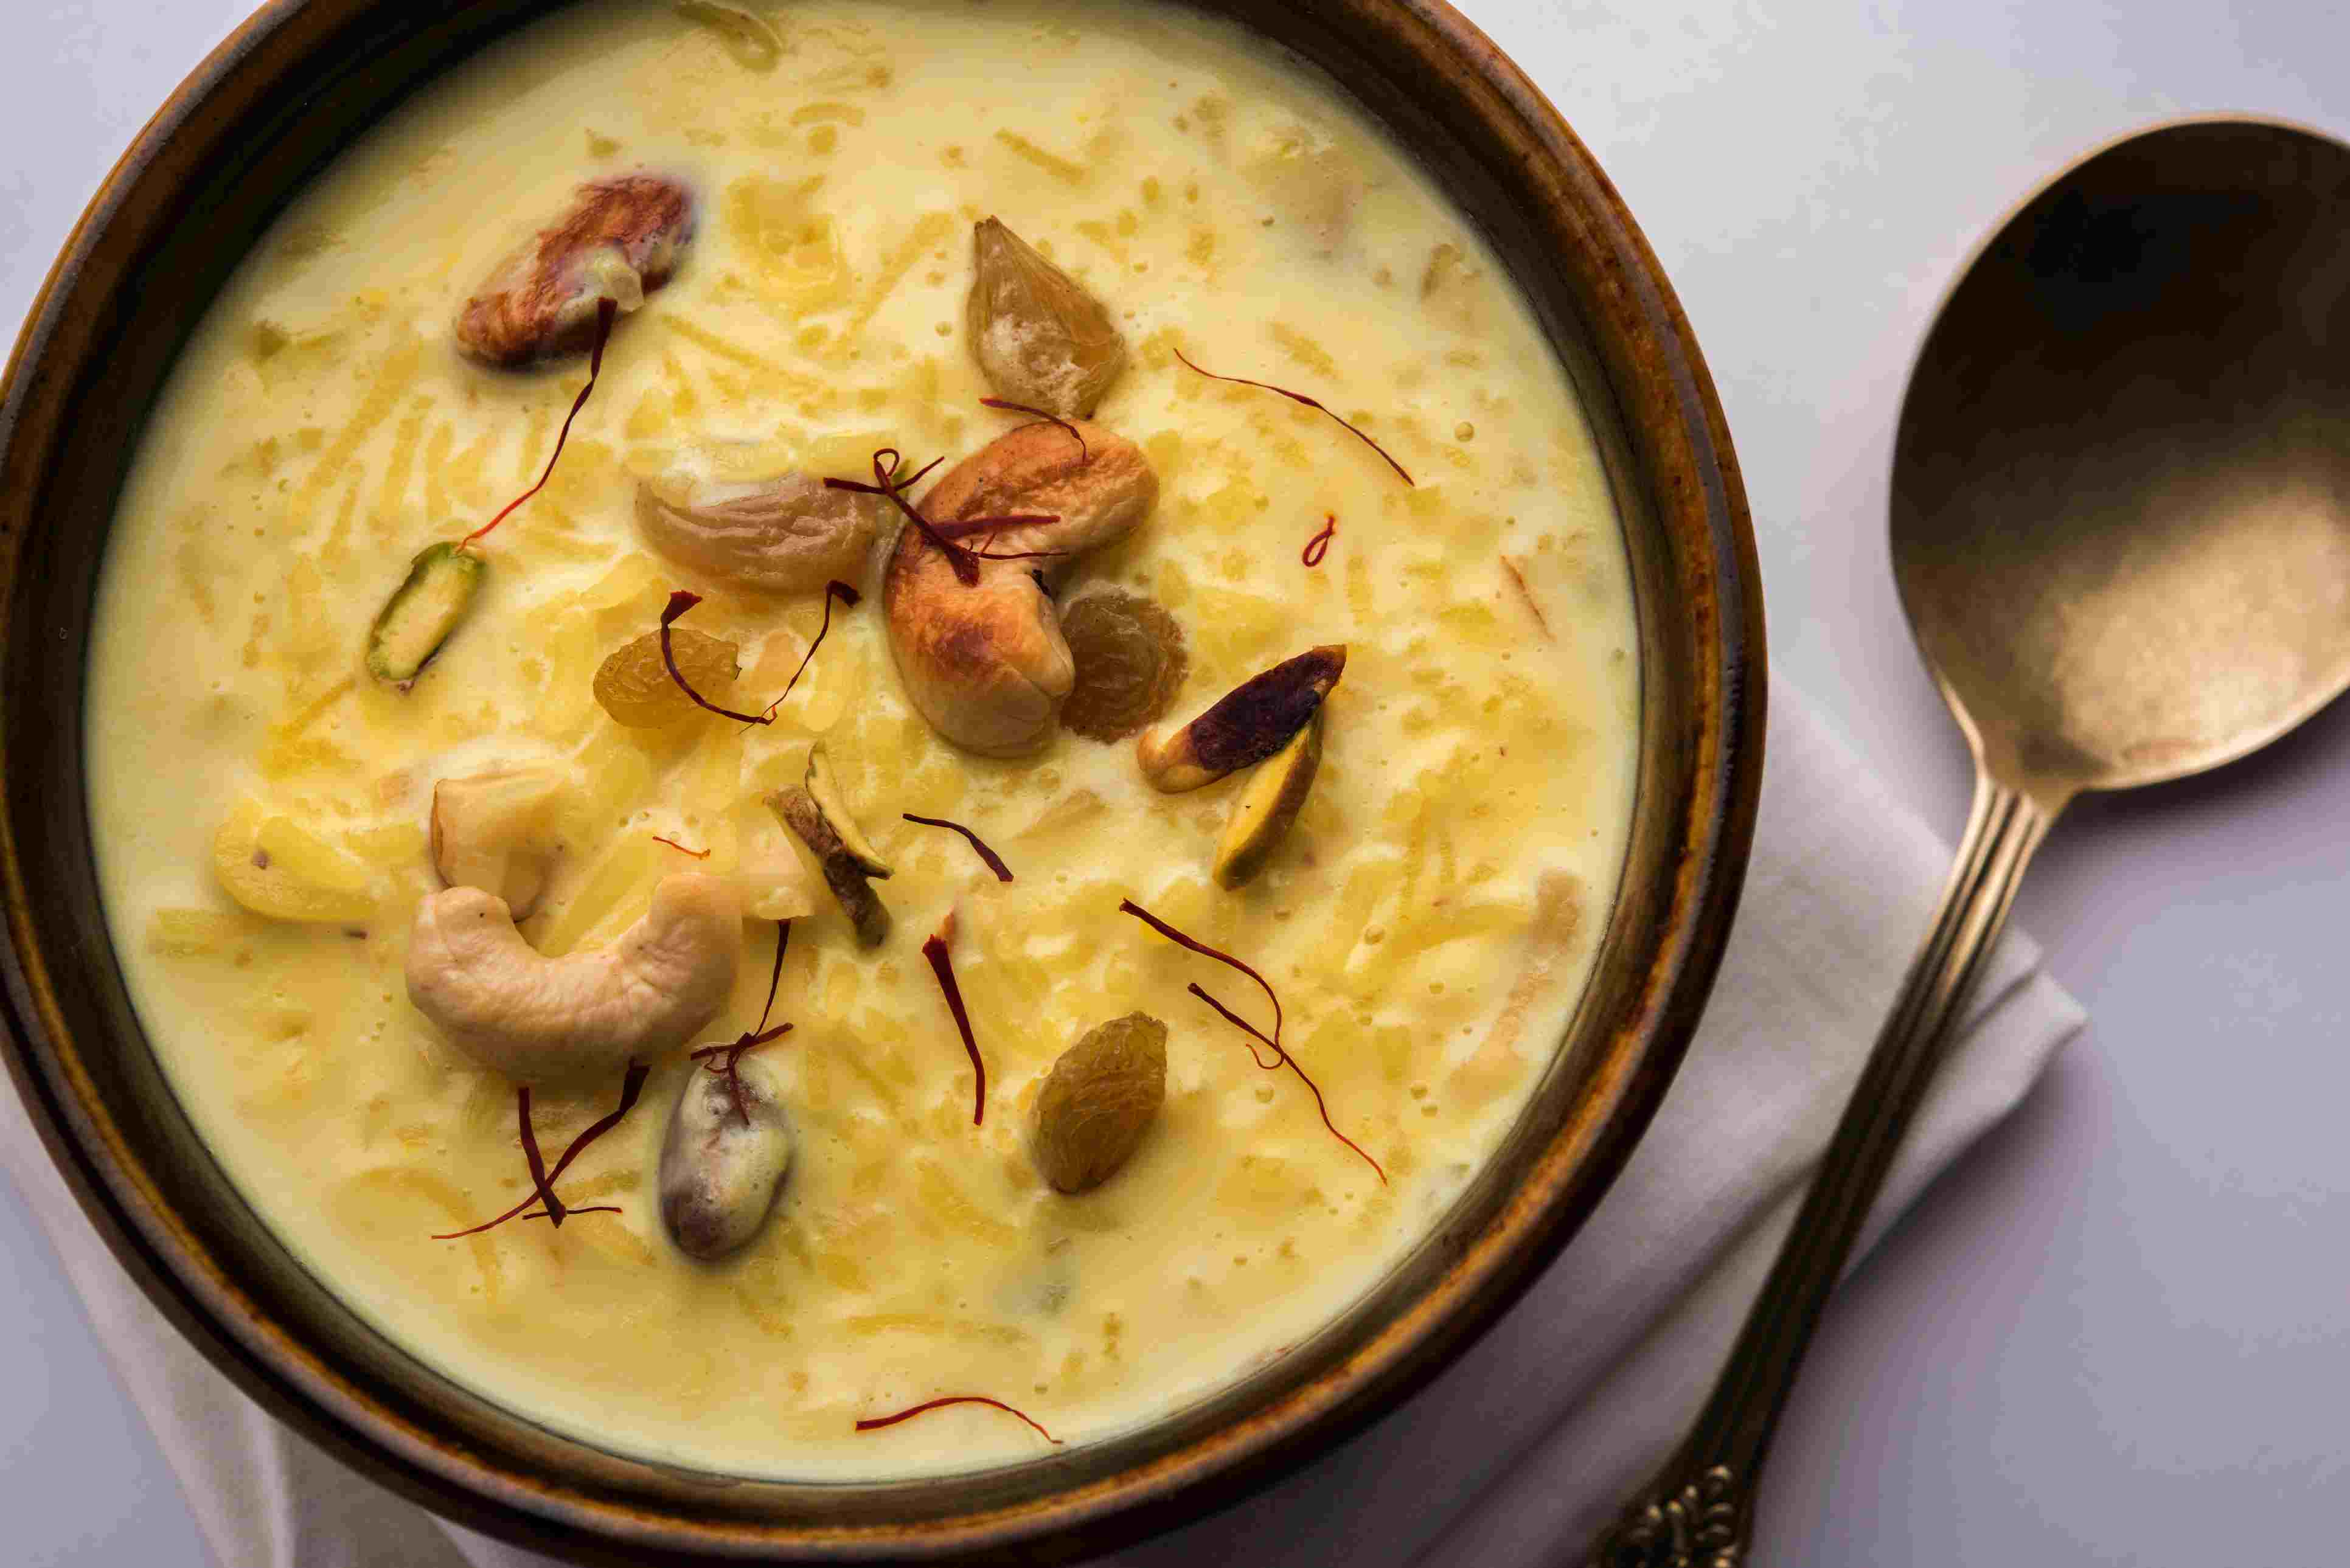 Kheer or Indian rice pudding